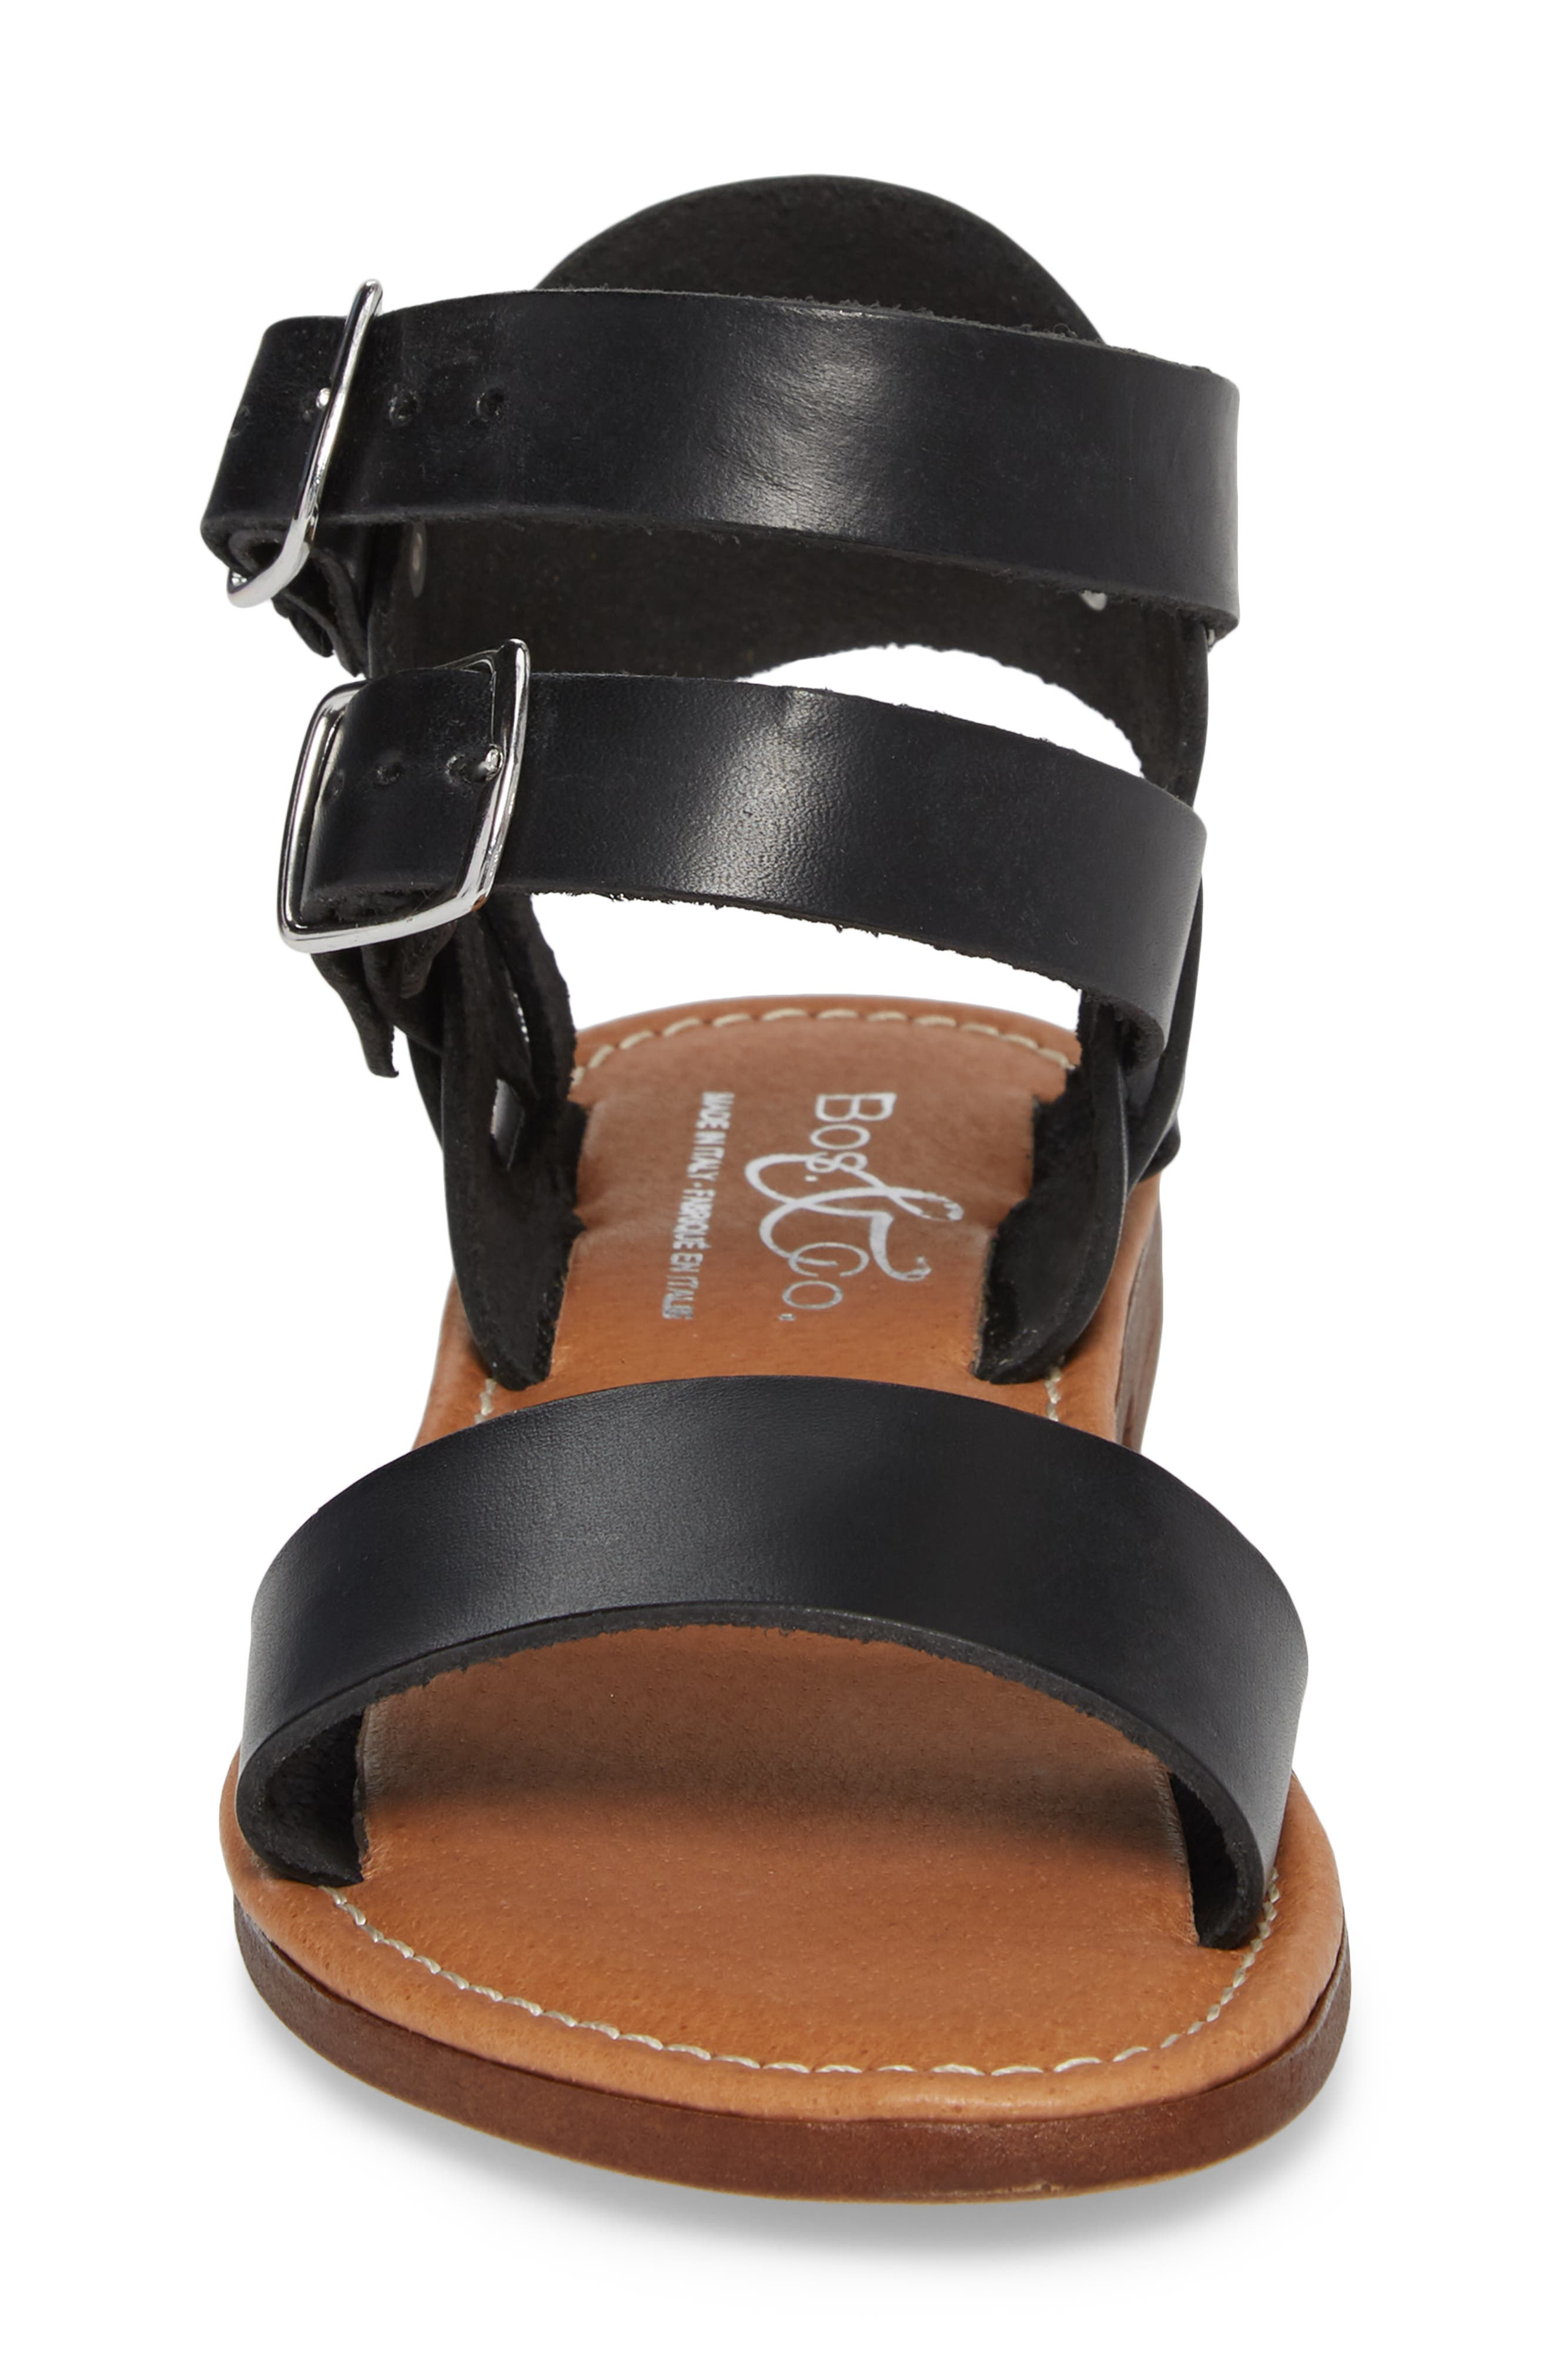 Ida Mid Top Sandal,                             Alternate thumbnail 4, color,                             BLACK VACCHETTA LEATHER